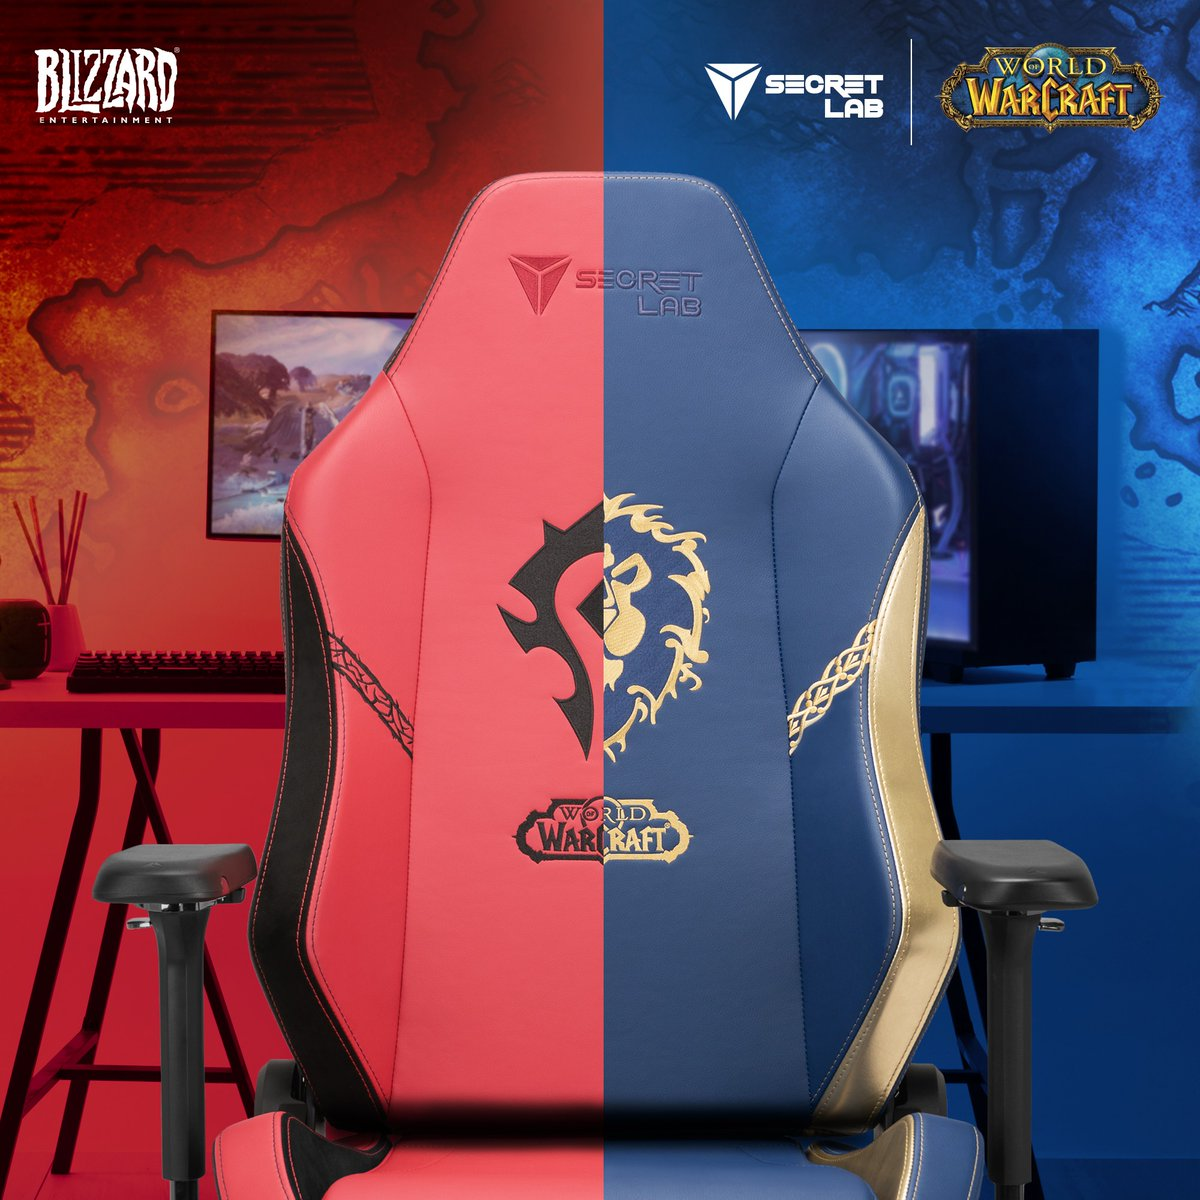 Wealthyman - Happy Halloween! My spooky friends at  @secretlabchairs have conjured me a World of Warcraft themed chair to giveaway. Details below ⬇️  🎃Follow me on Twitter and Twitch so I can DM the winner 👻Like/RT  🪦 Horde or Alliance? Comment below  💀ENTER:   #ad